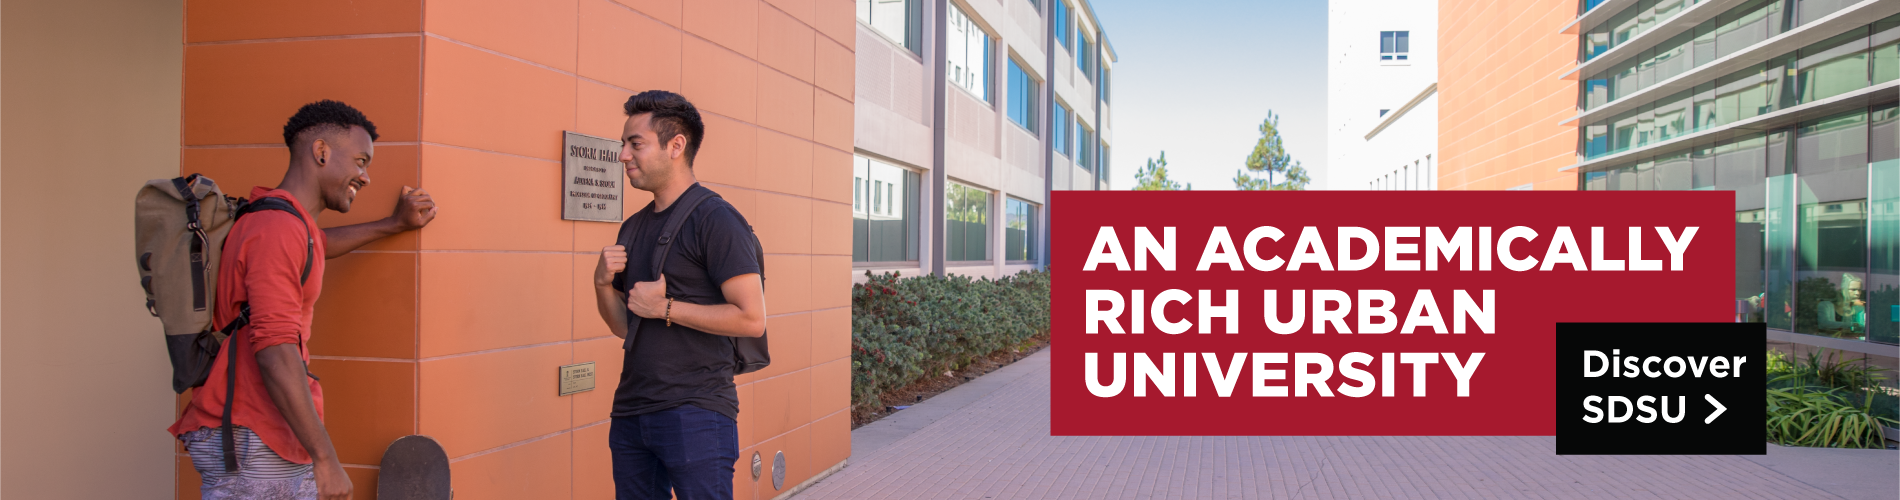 An Academically Rich Urban University. Discover SDSU.